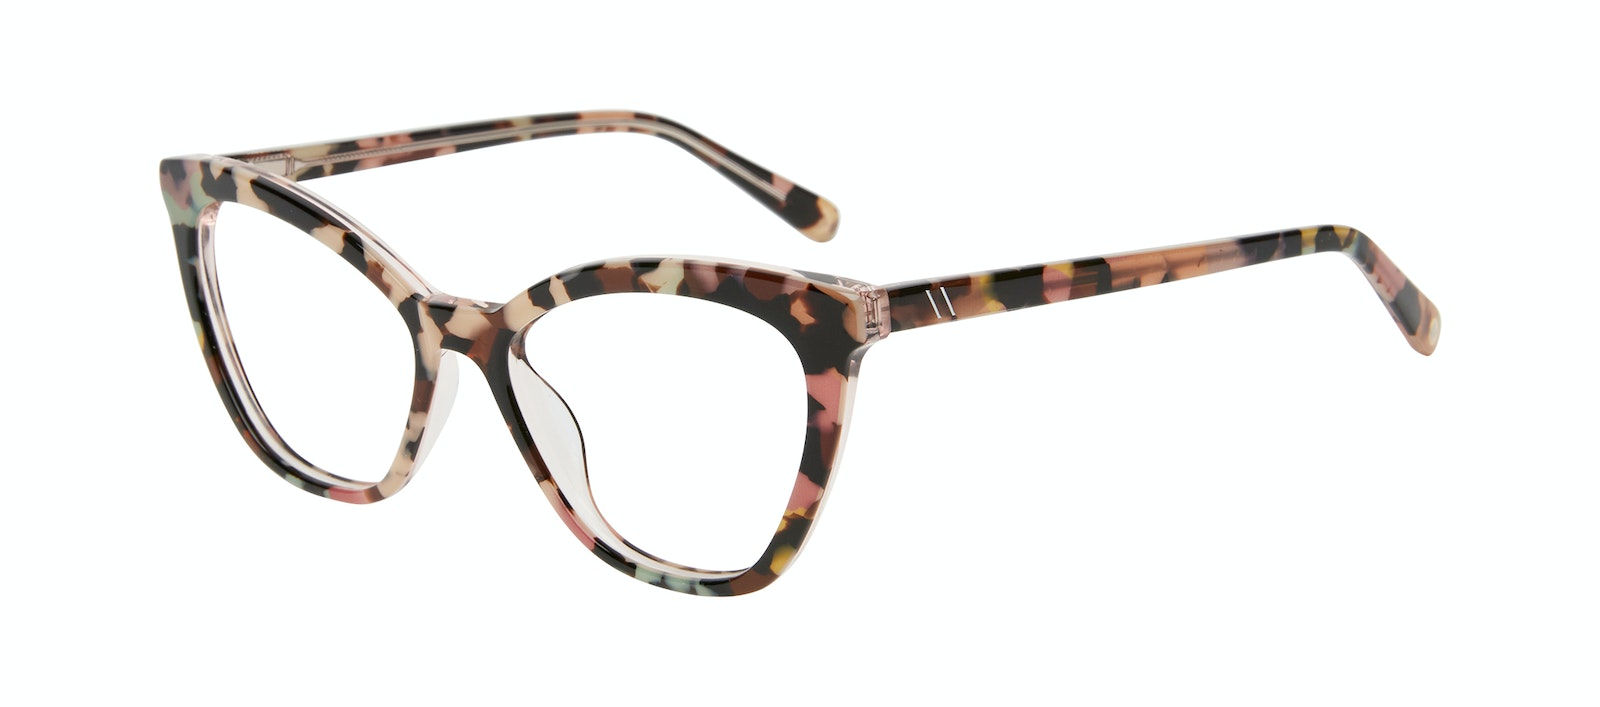 Affordable Fashion Glasses Cat Eye Eyeglasses Women Elan Pastel Tort Tilt